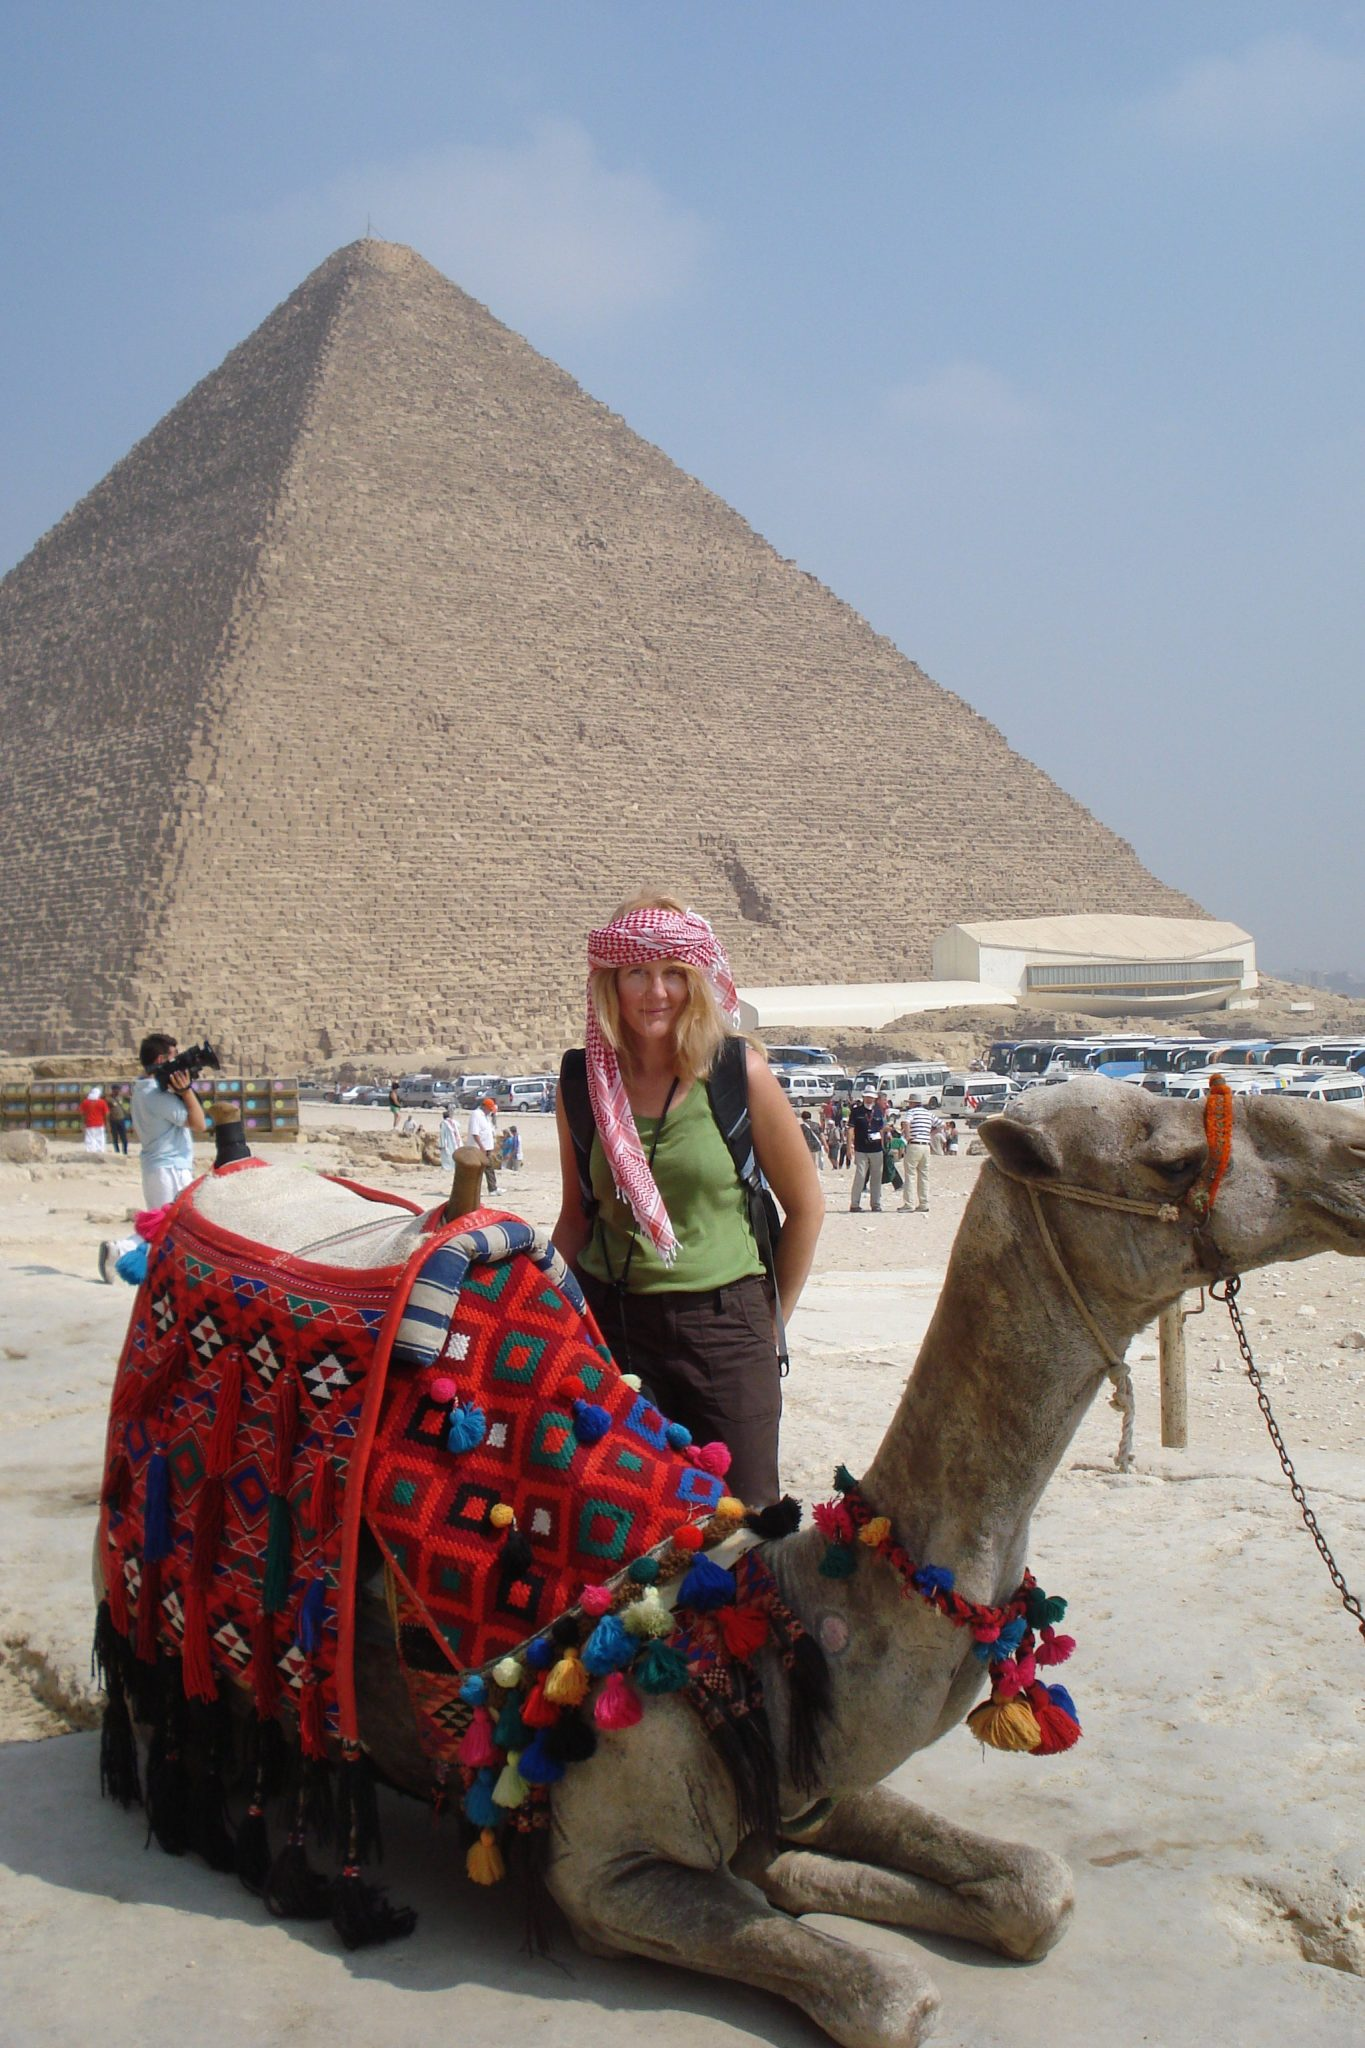 Me wearing a red and white checkered headdress standing behind a colorfully decorated camel in front of the Giza pyramids